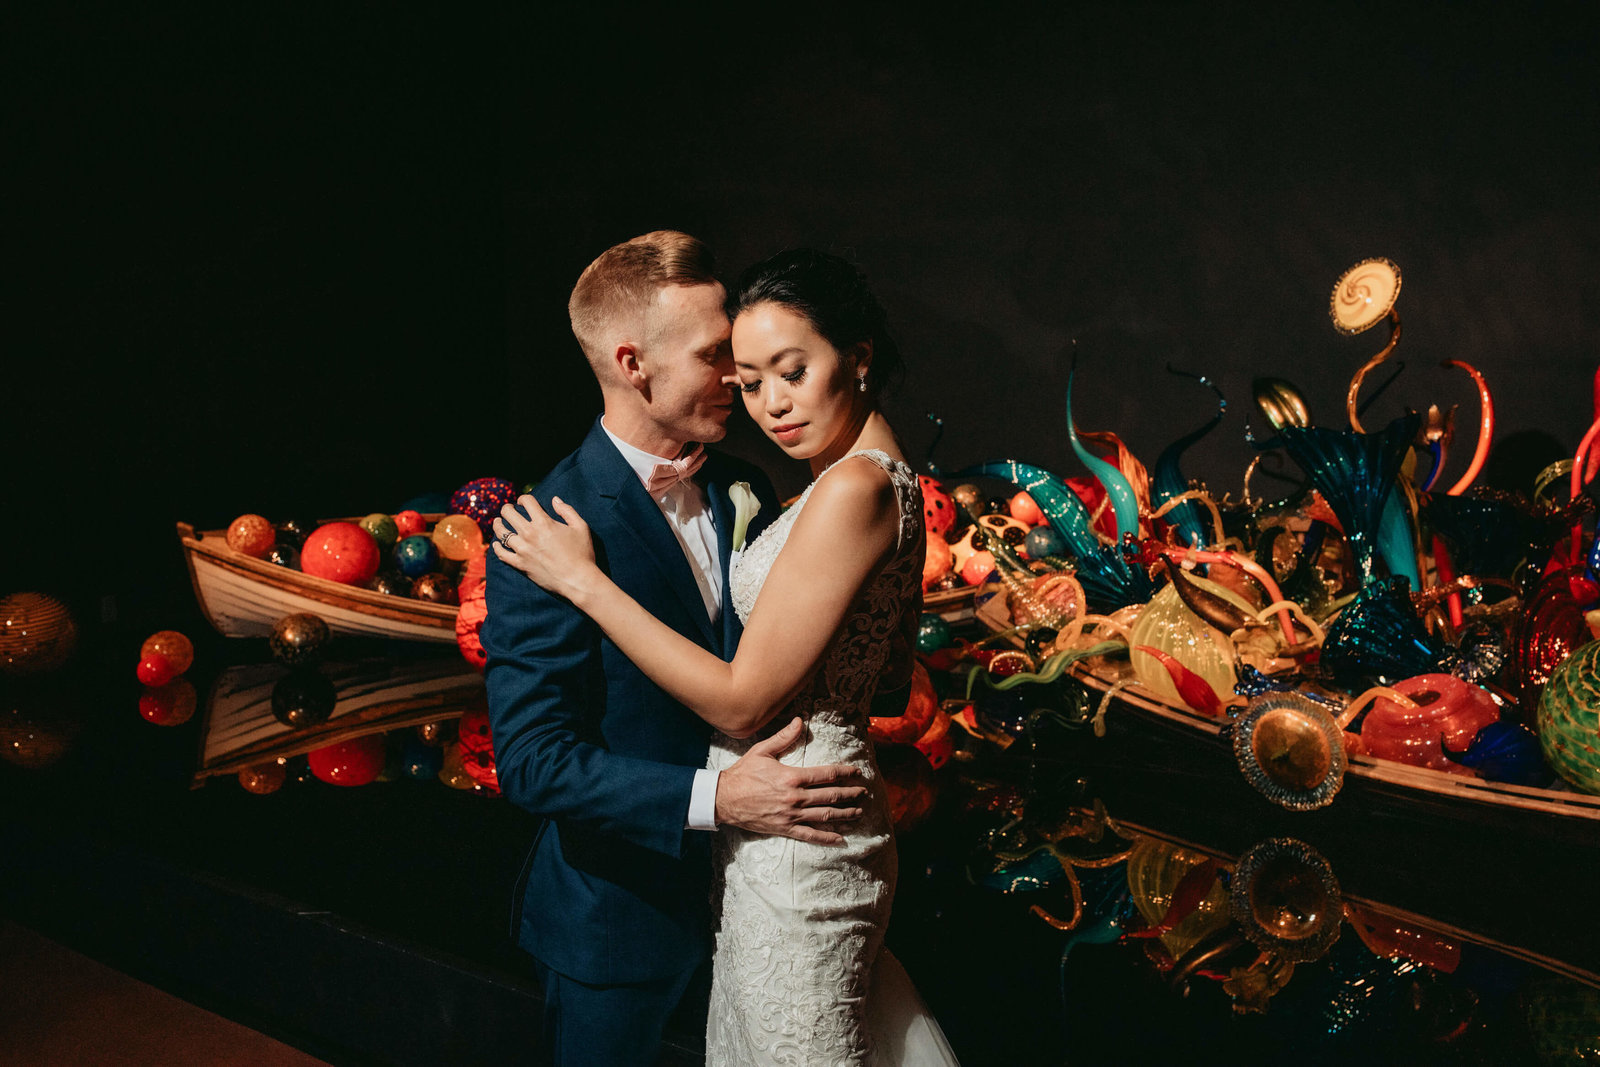 chihuly-garden-and-glass-wedding-sharel-eric-by-Adina-Preston-Photography-2019-389 2